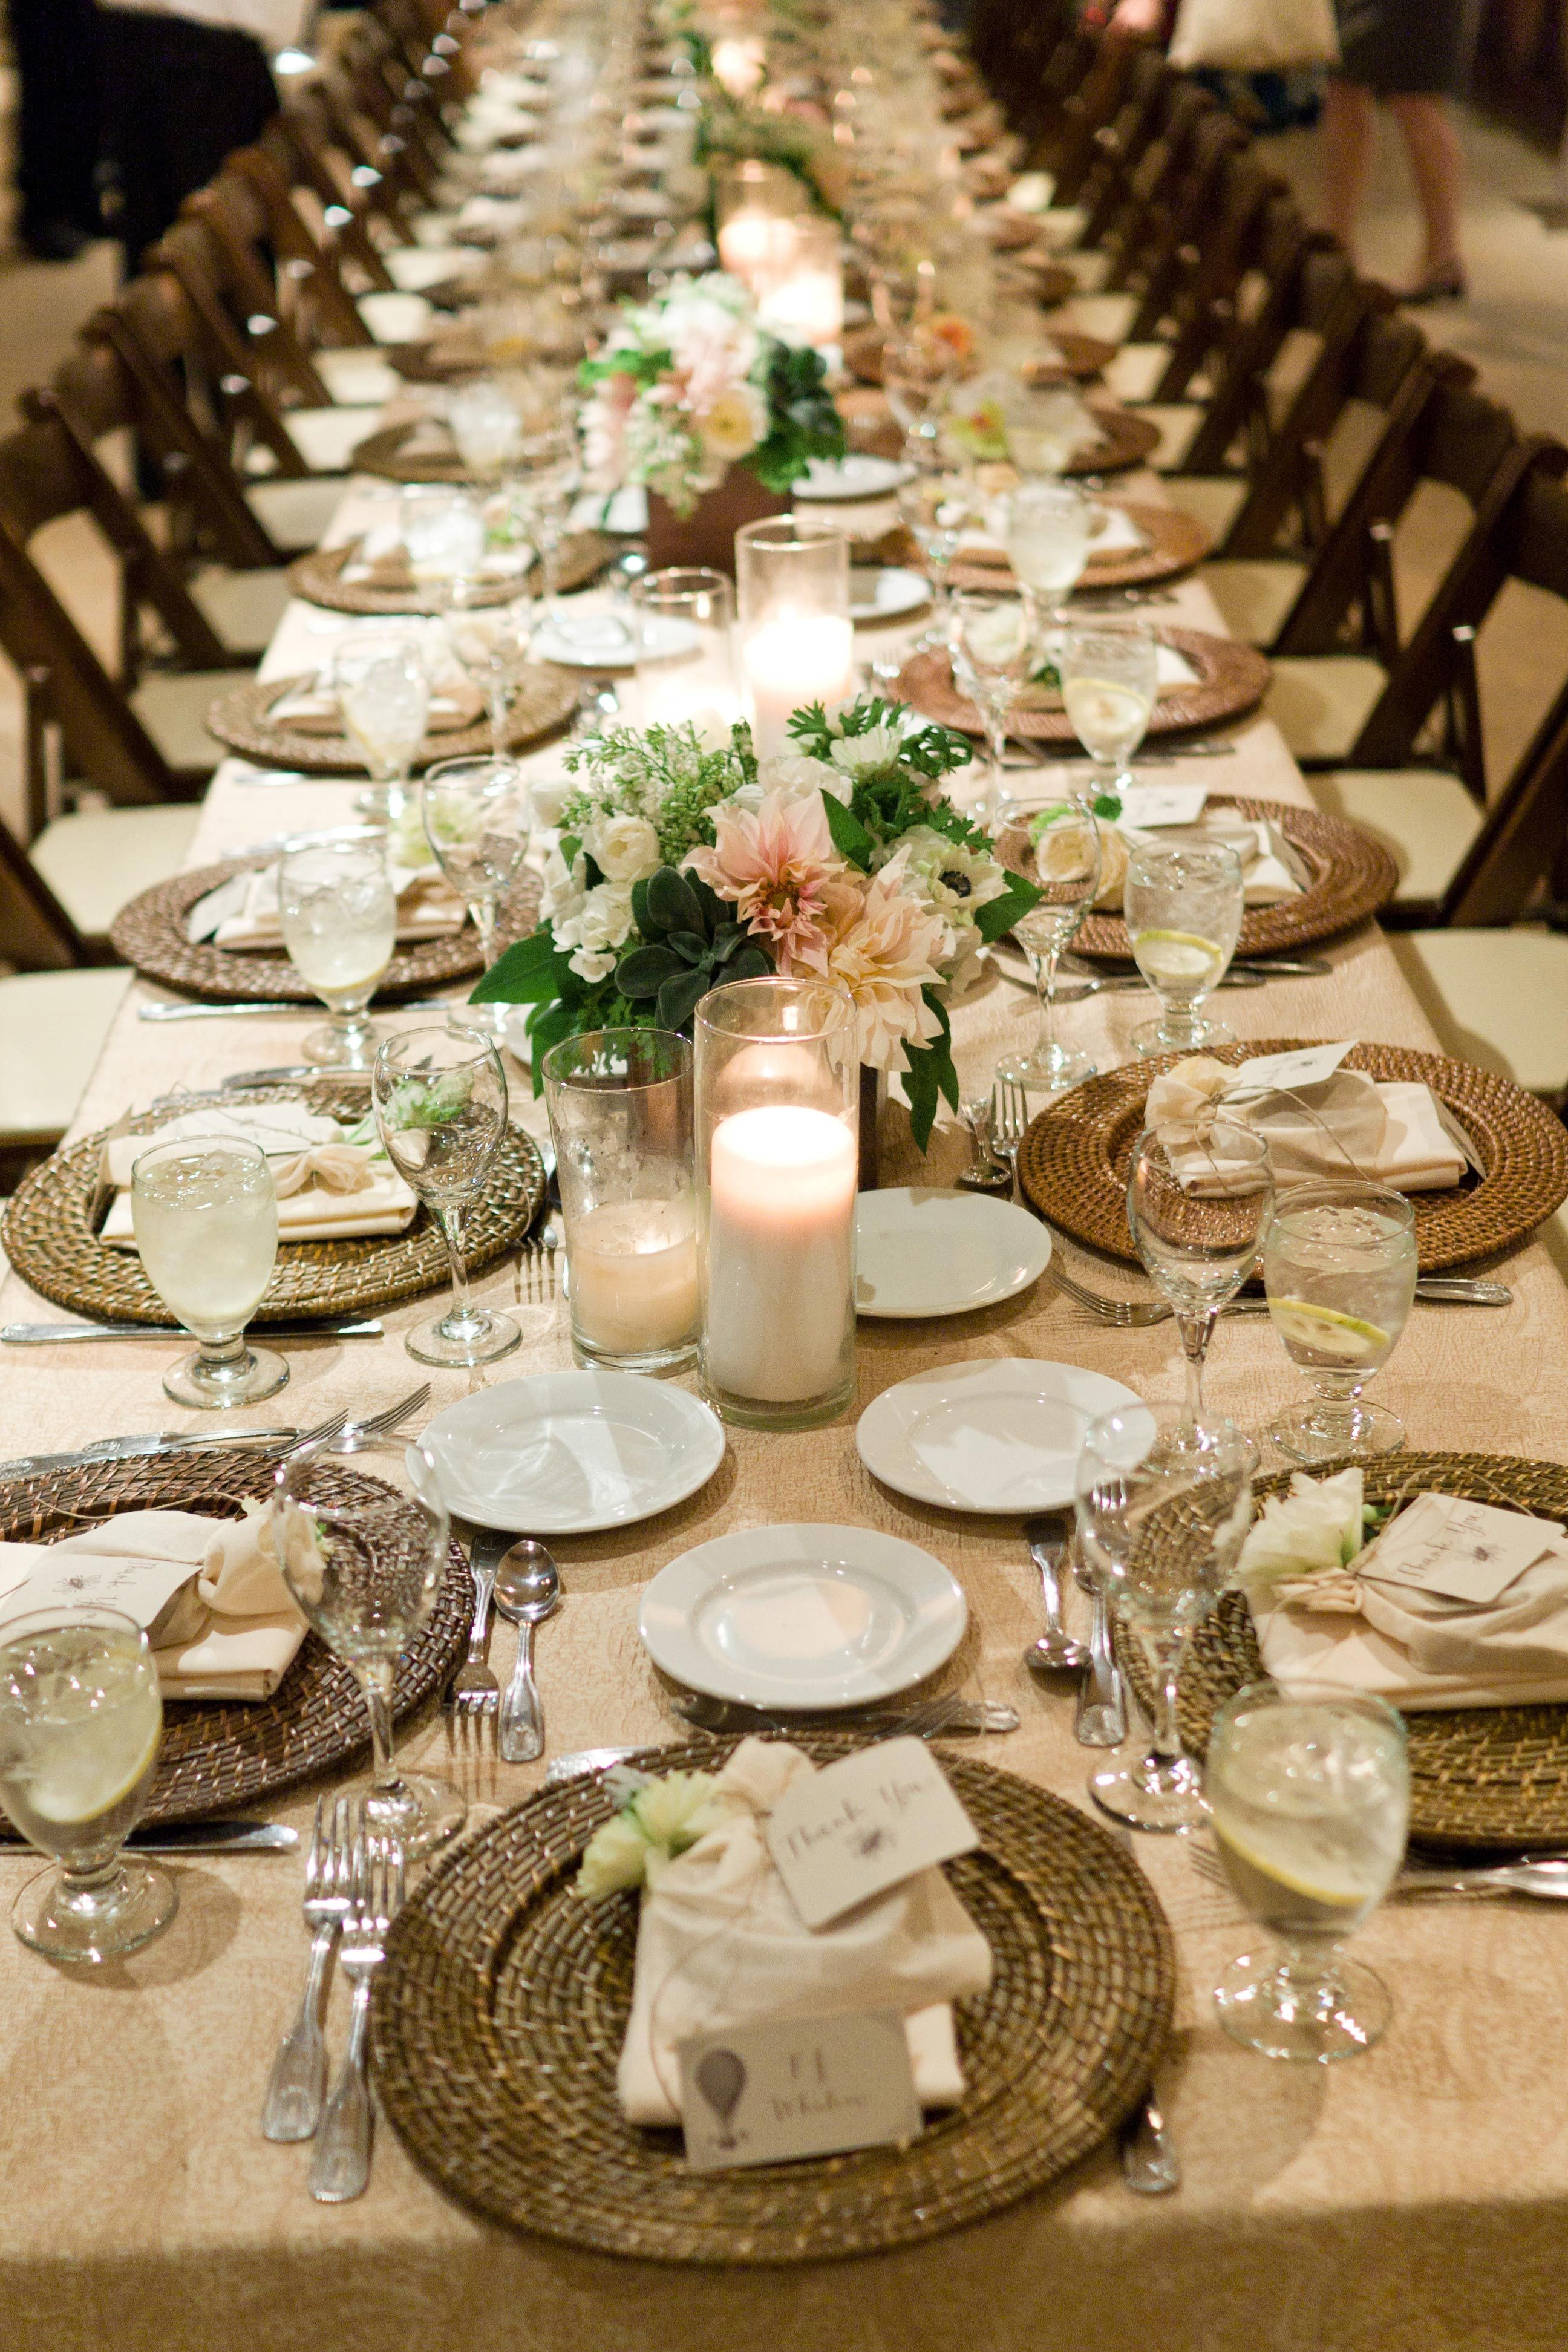 Down the middle of a long table low floral arrangements in shades of blush and ivory sat in square wooden holders alternated with glowing candles. & Rehearsal Dinner Romance: Celebrating Love at a Gorgeous Vineyard ...